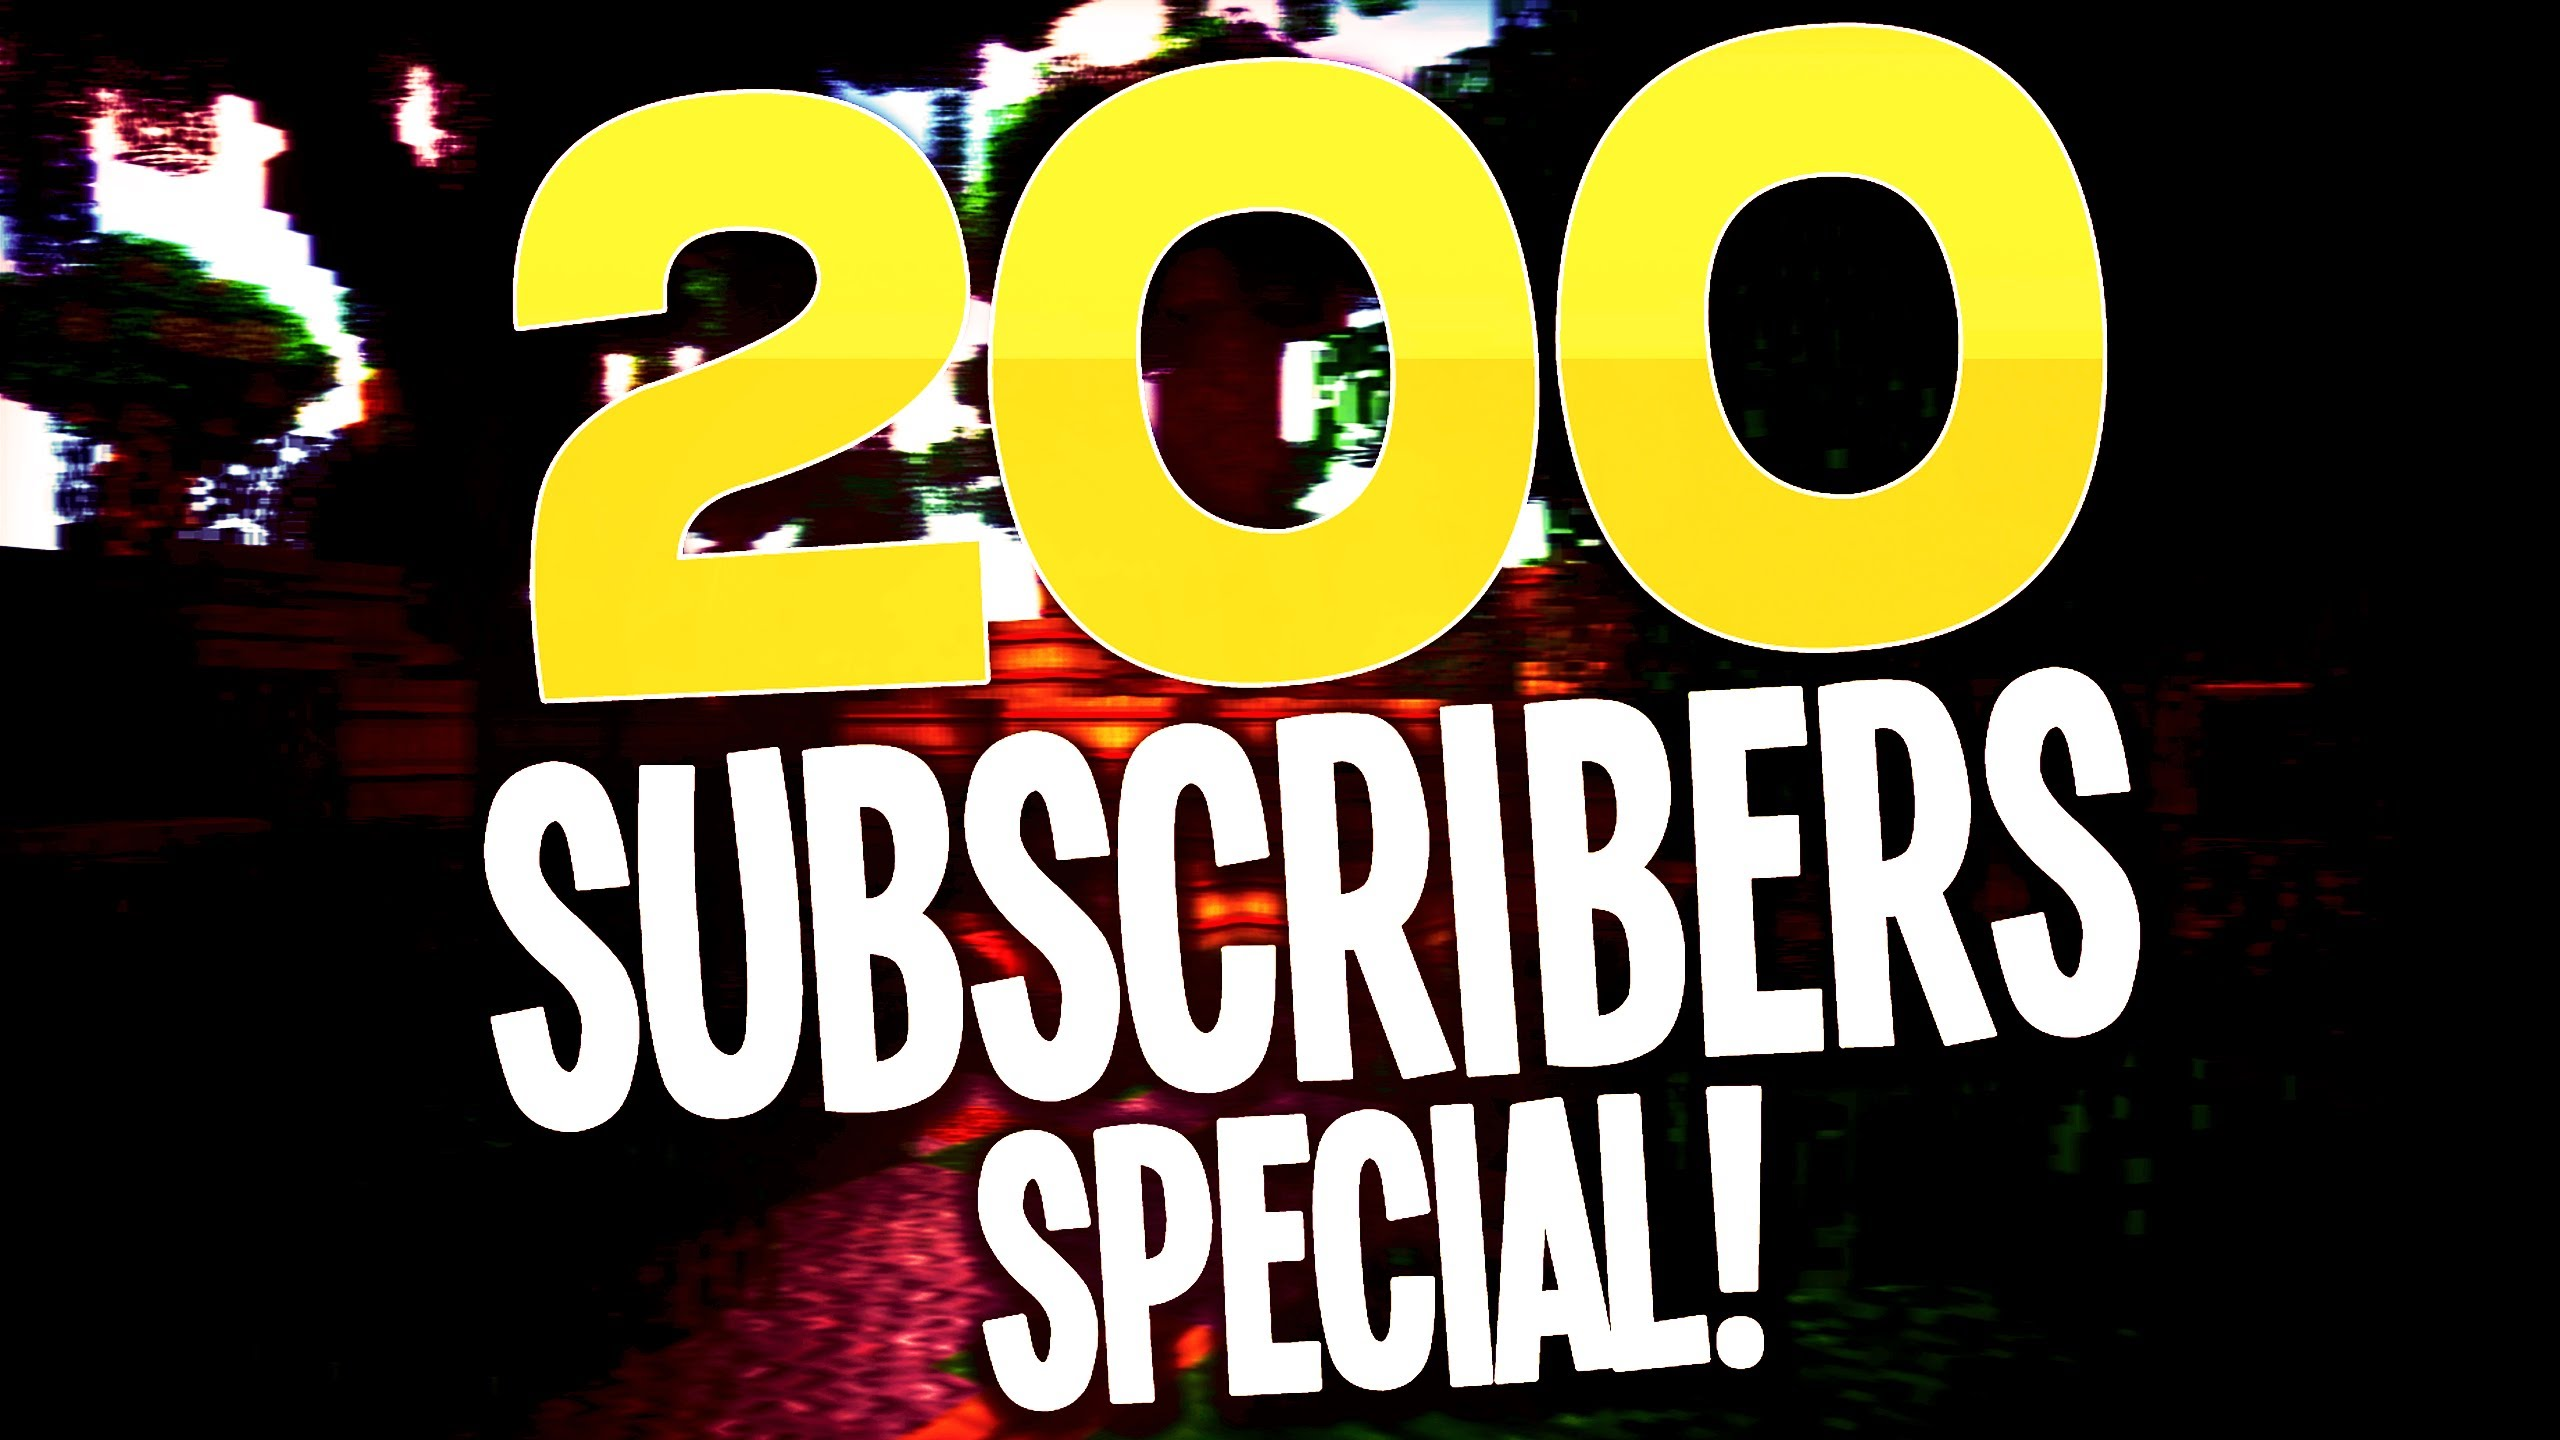 Limited offer 200 YouTube subs cribe non drop lifetime gurenteed 12-24 hours in complete